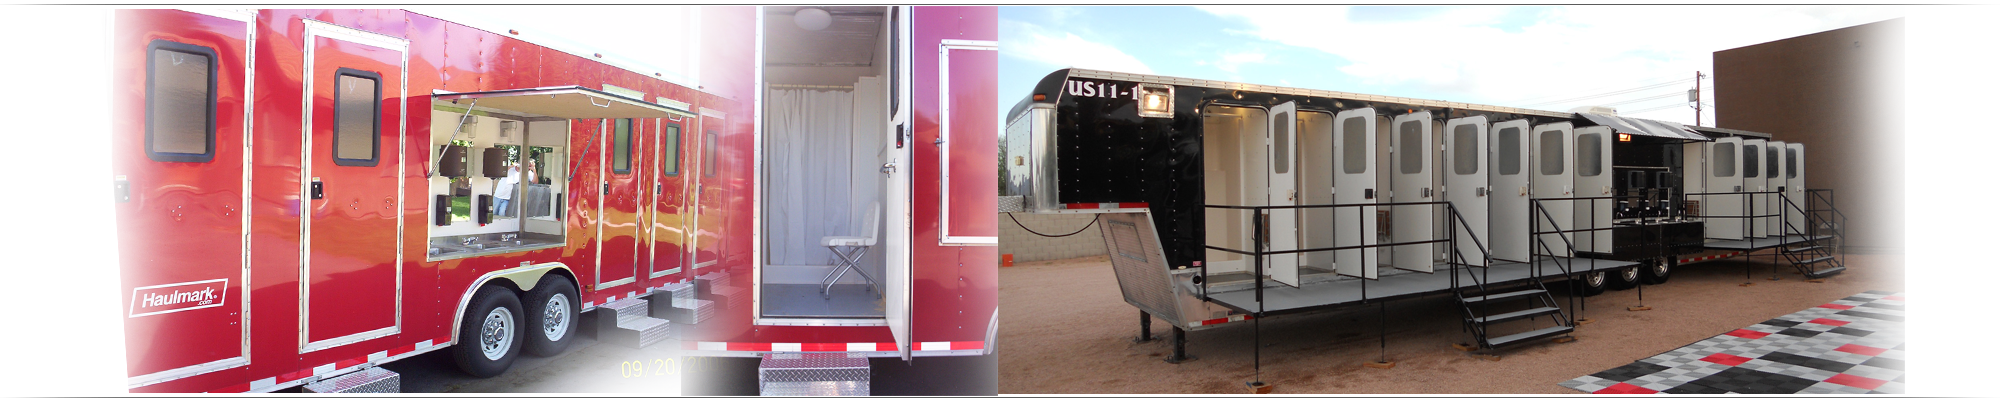 we trailer trailers texas safety do emergency shower eyewash about what custom